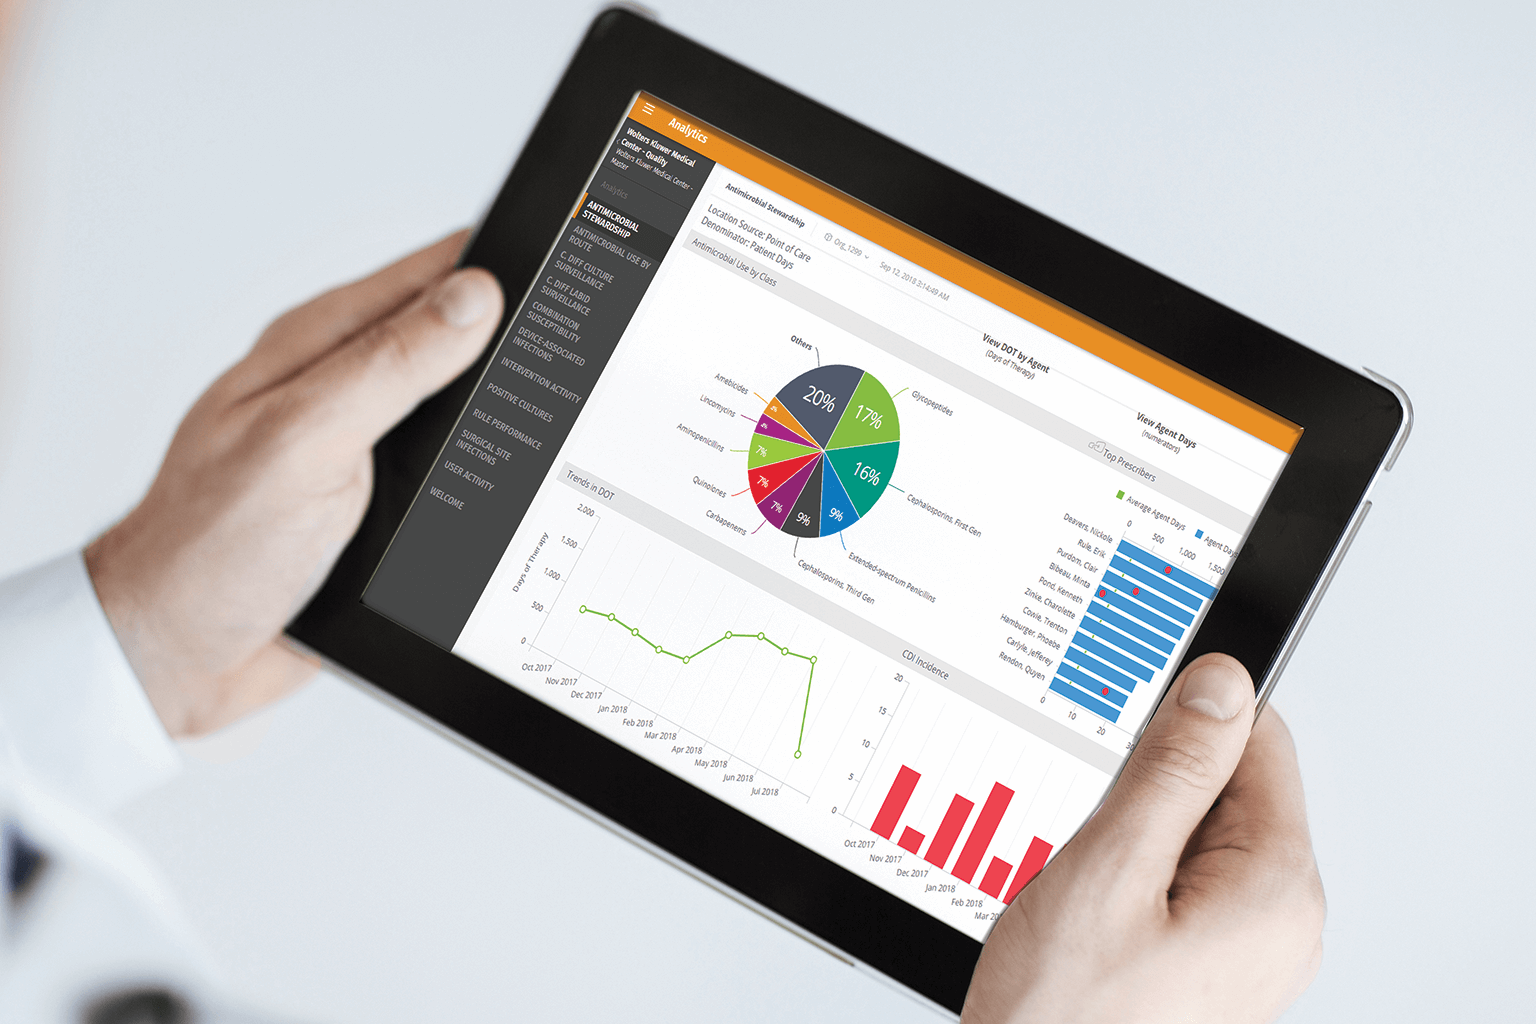 sentri7-analytics-on-tablet-reviewing-reports